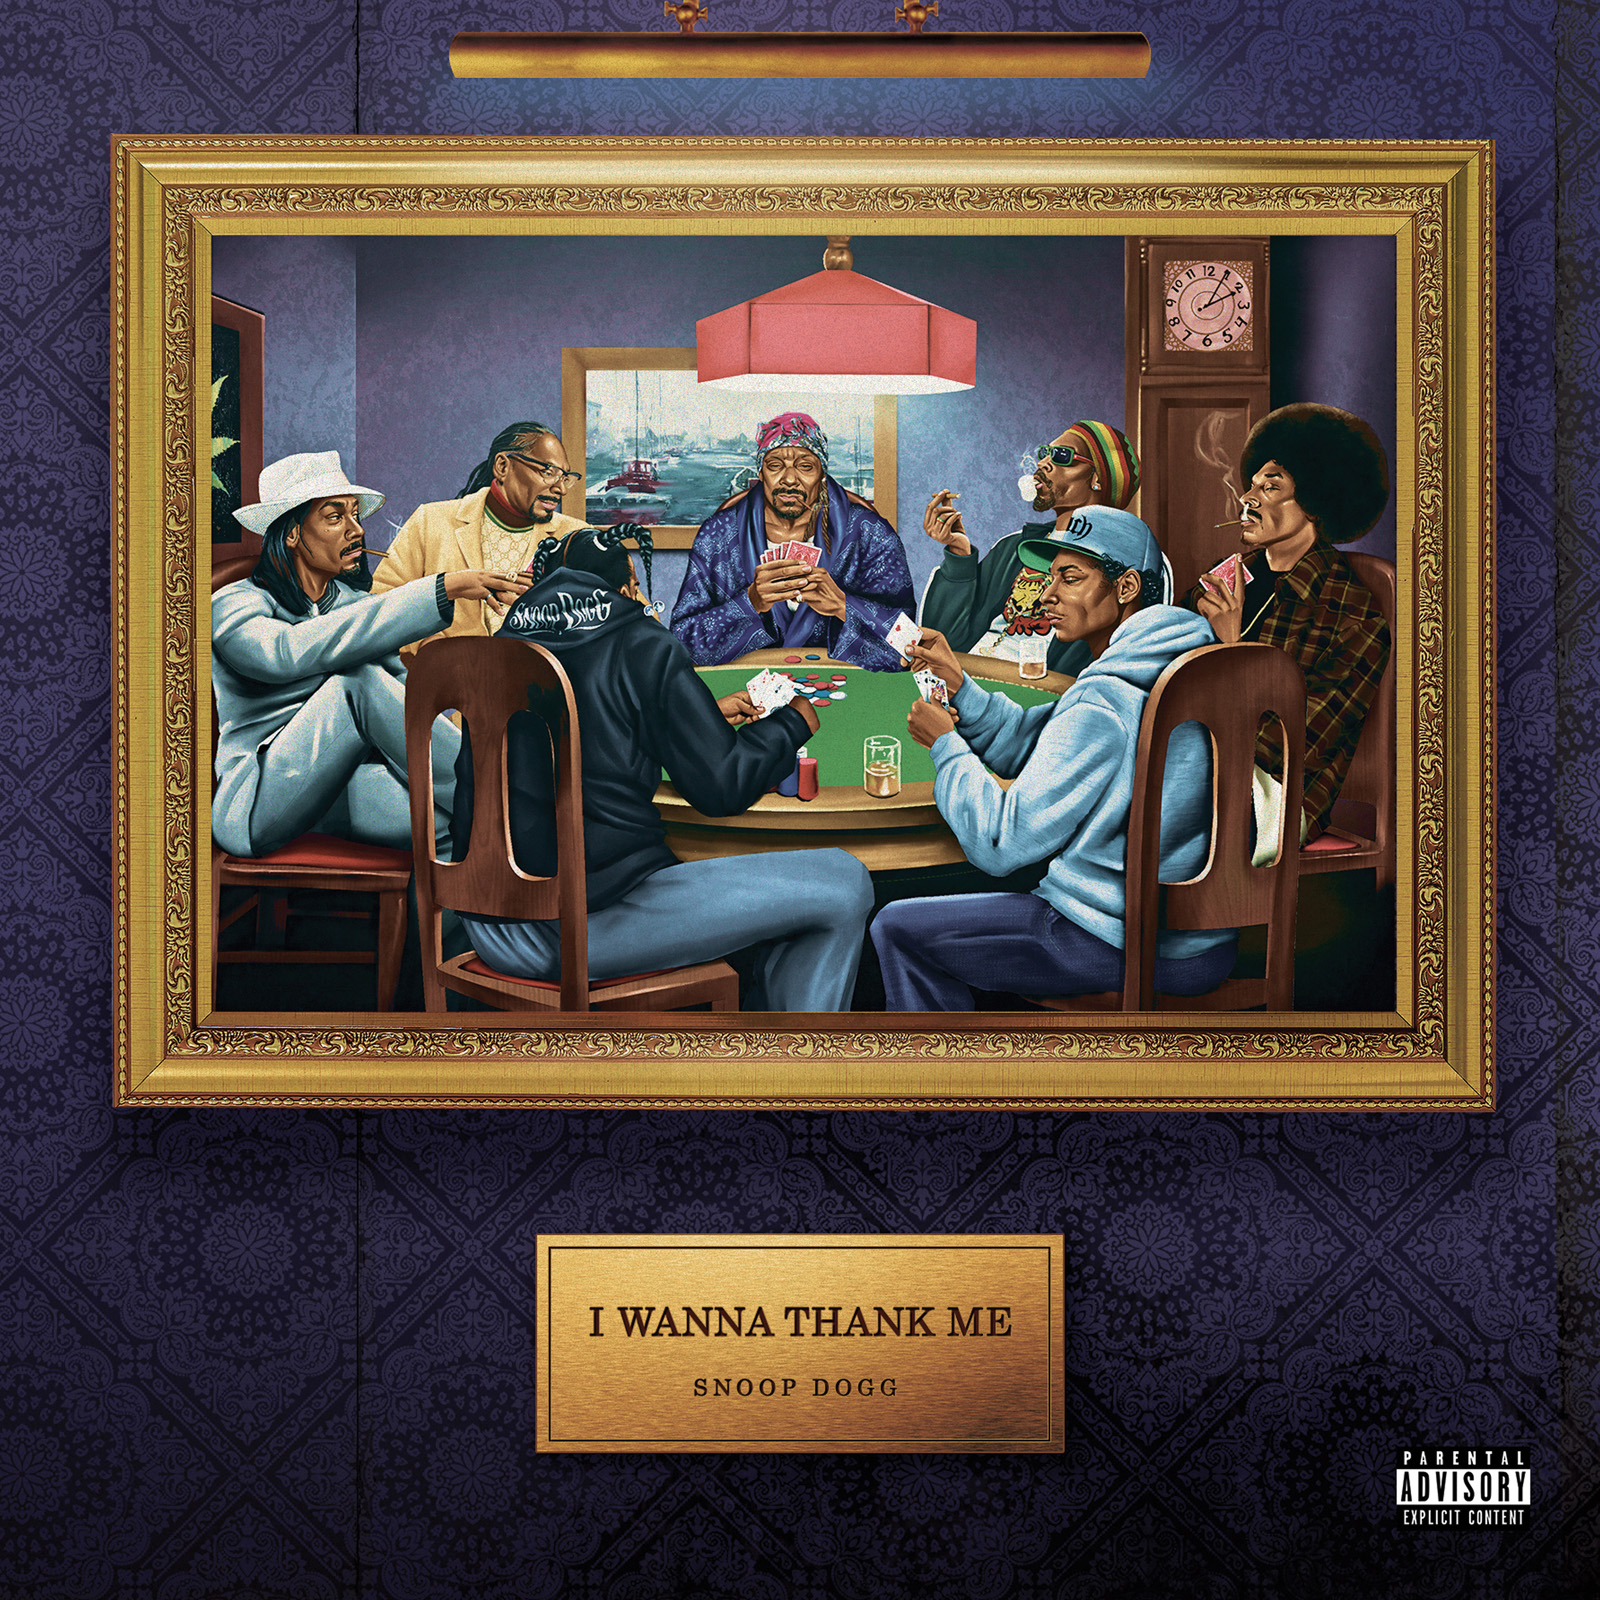 Snoop Doggs musikalisches Vermächtnis 'I Wanna Thank Me' im Full Album Stream | Albumtipp